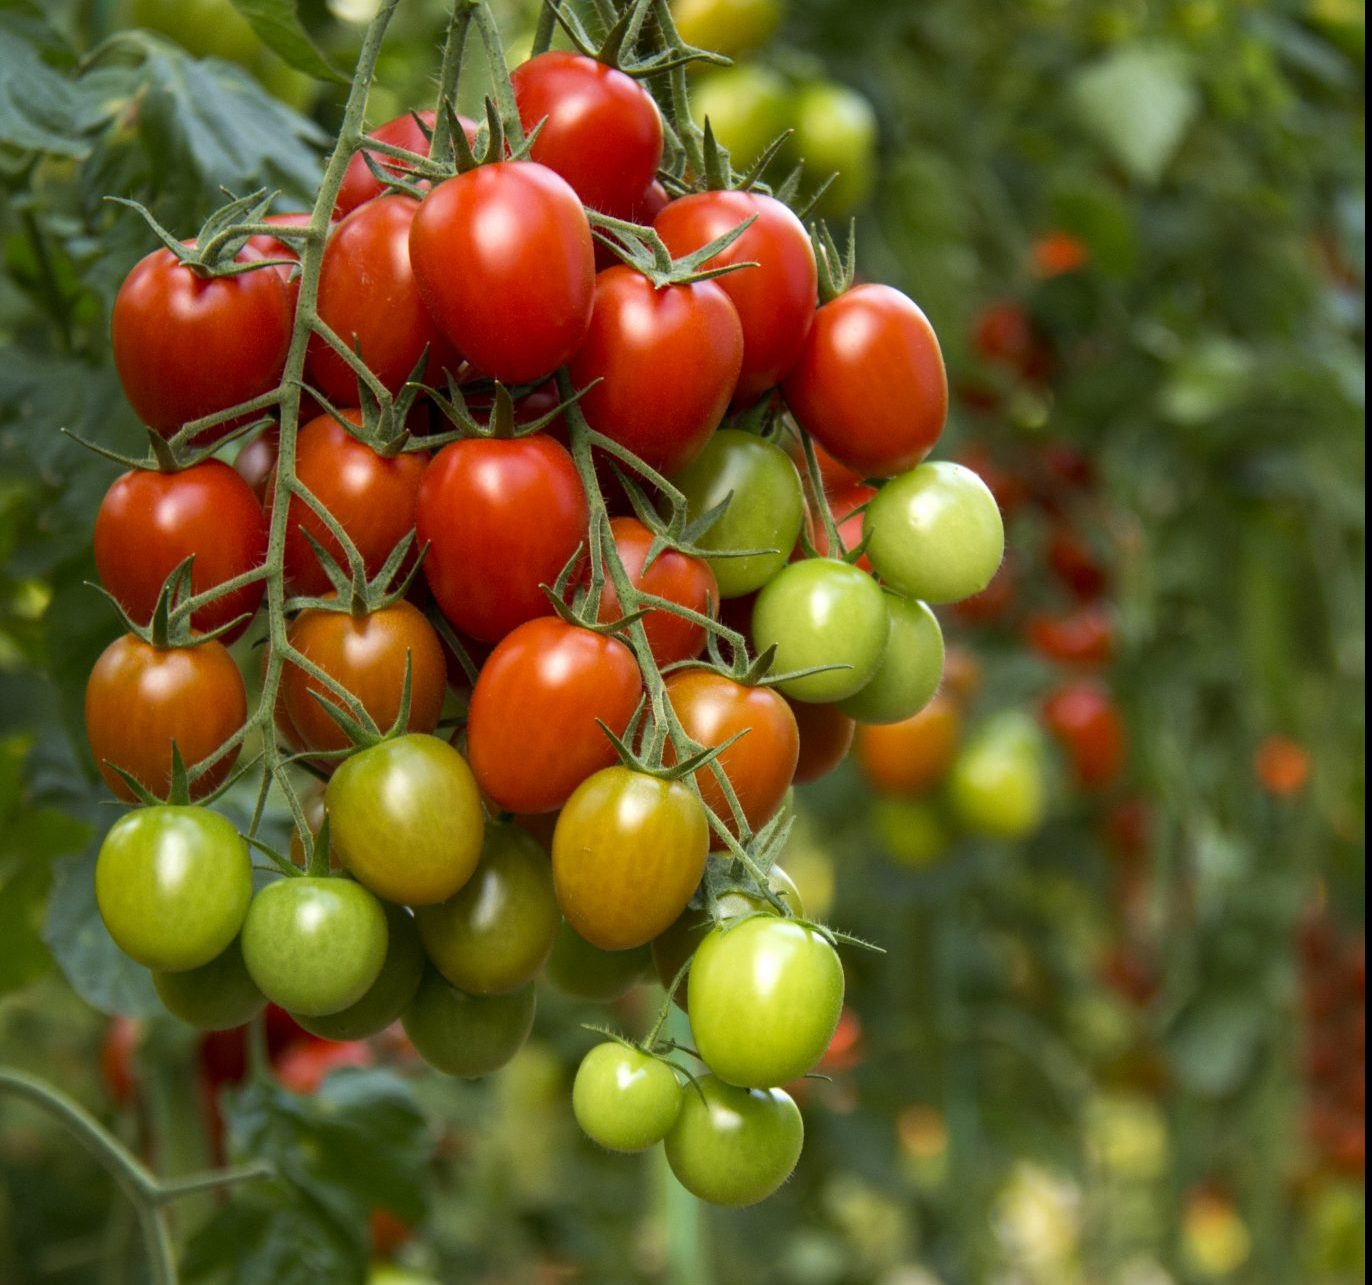 Cluster of tomatoes.